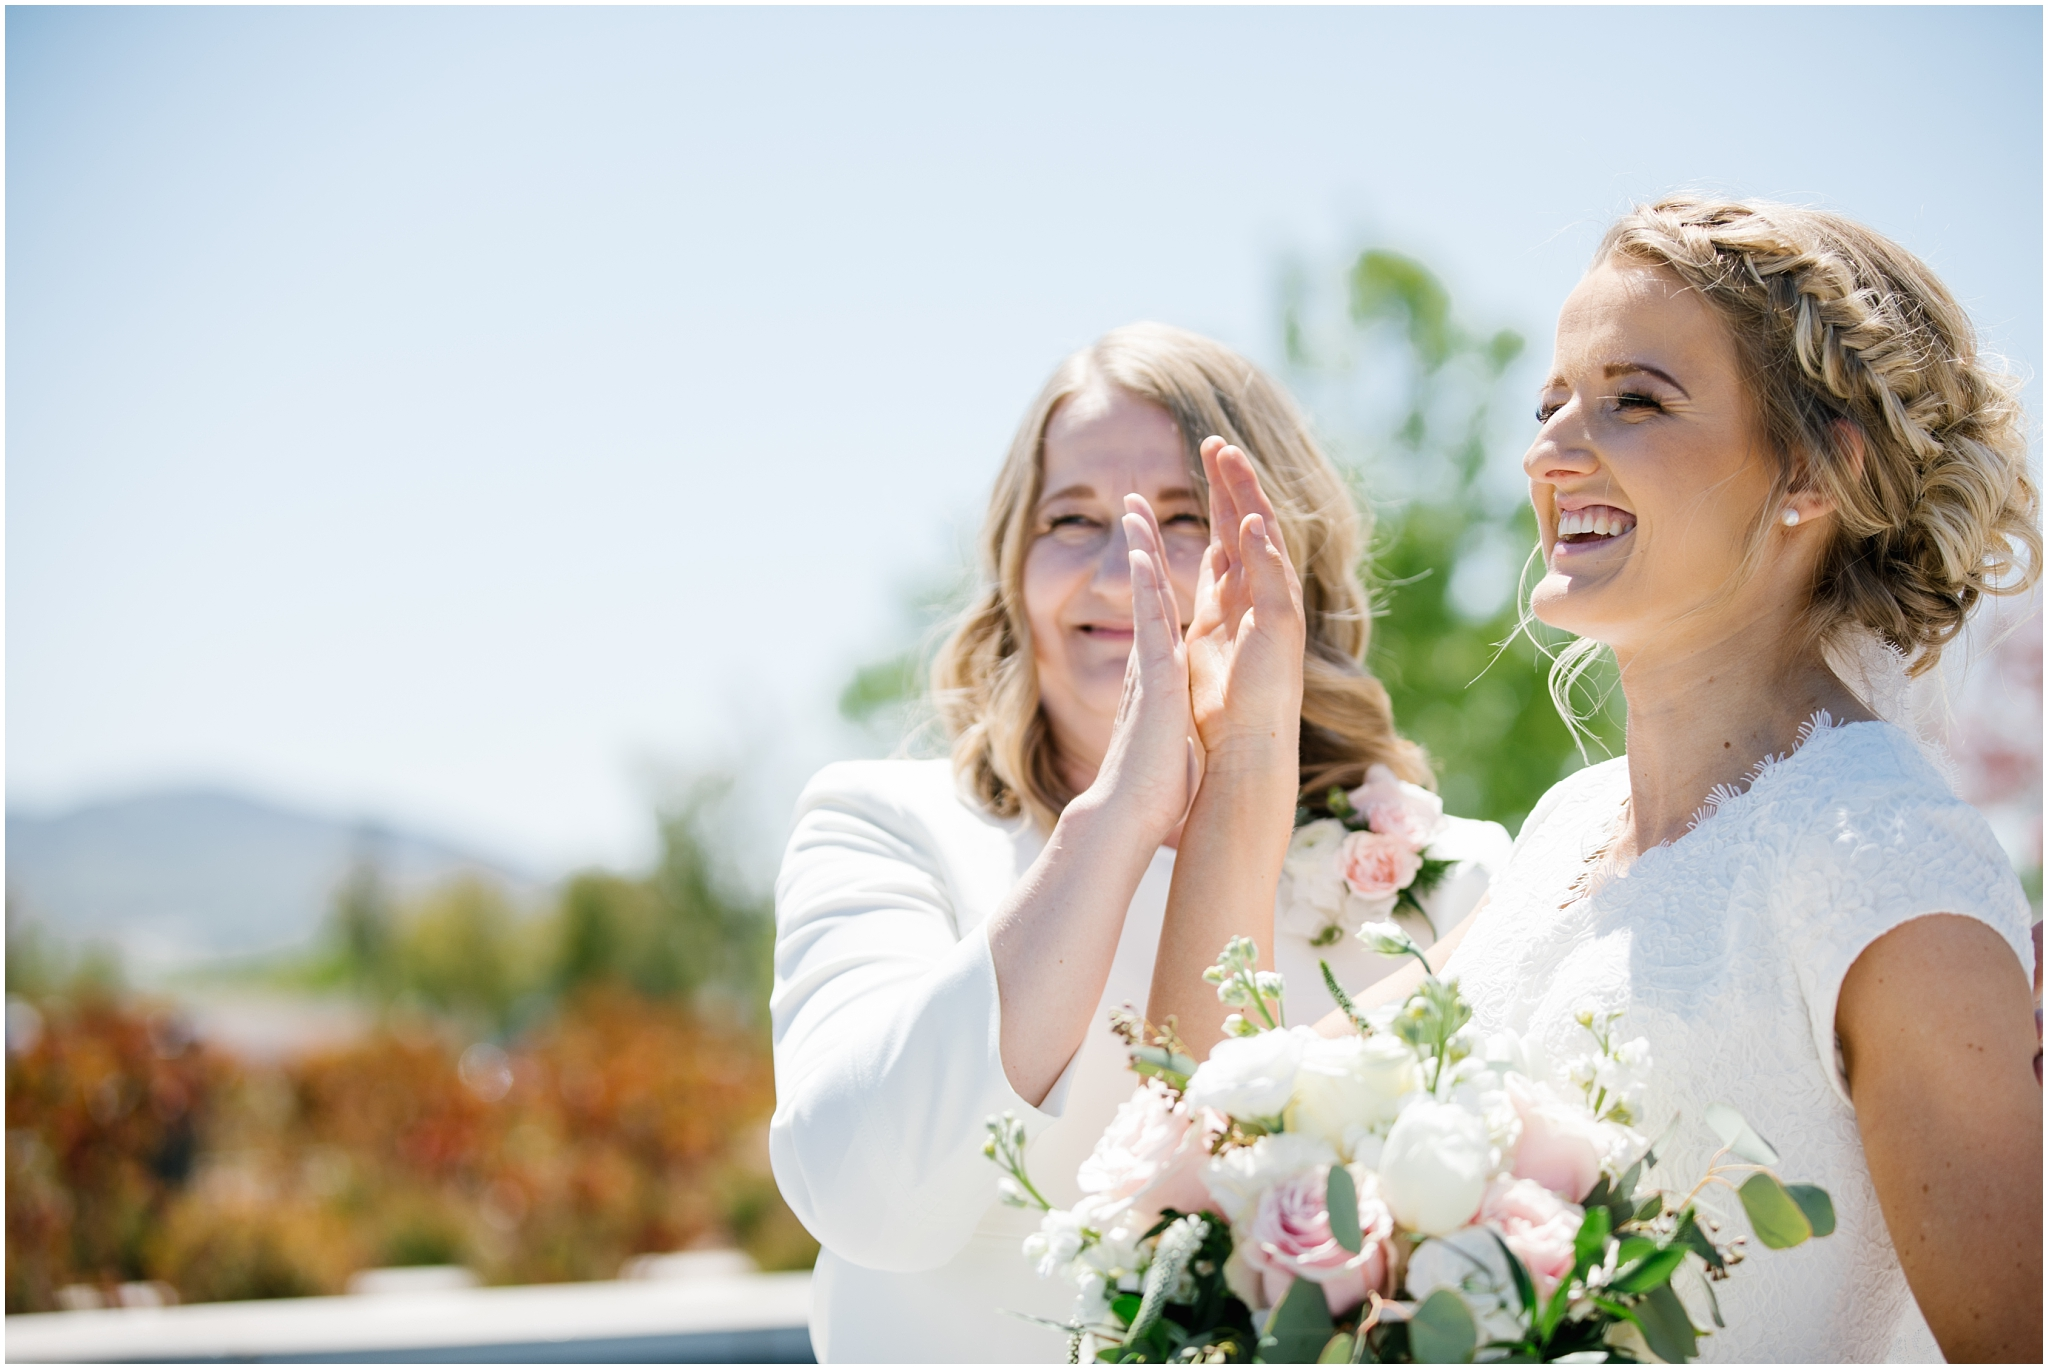 Lizzie-B-Imagery-Utah-Wedding-Photographer-Thanksgiving-Point-Payson-Temple_0046.jpg